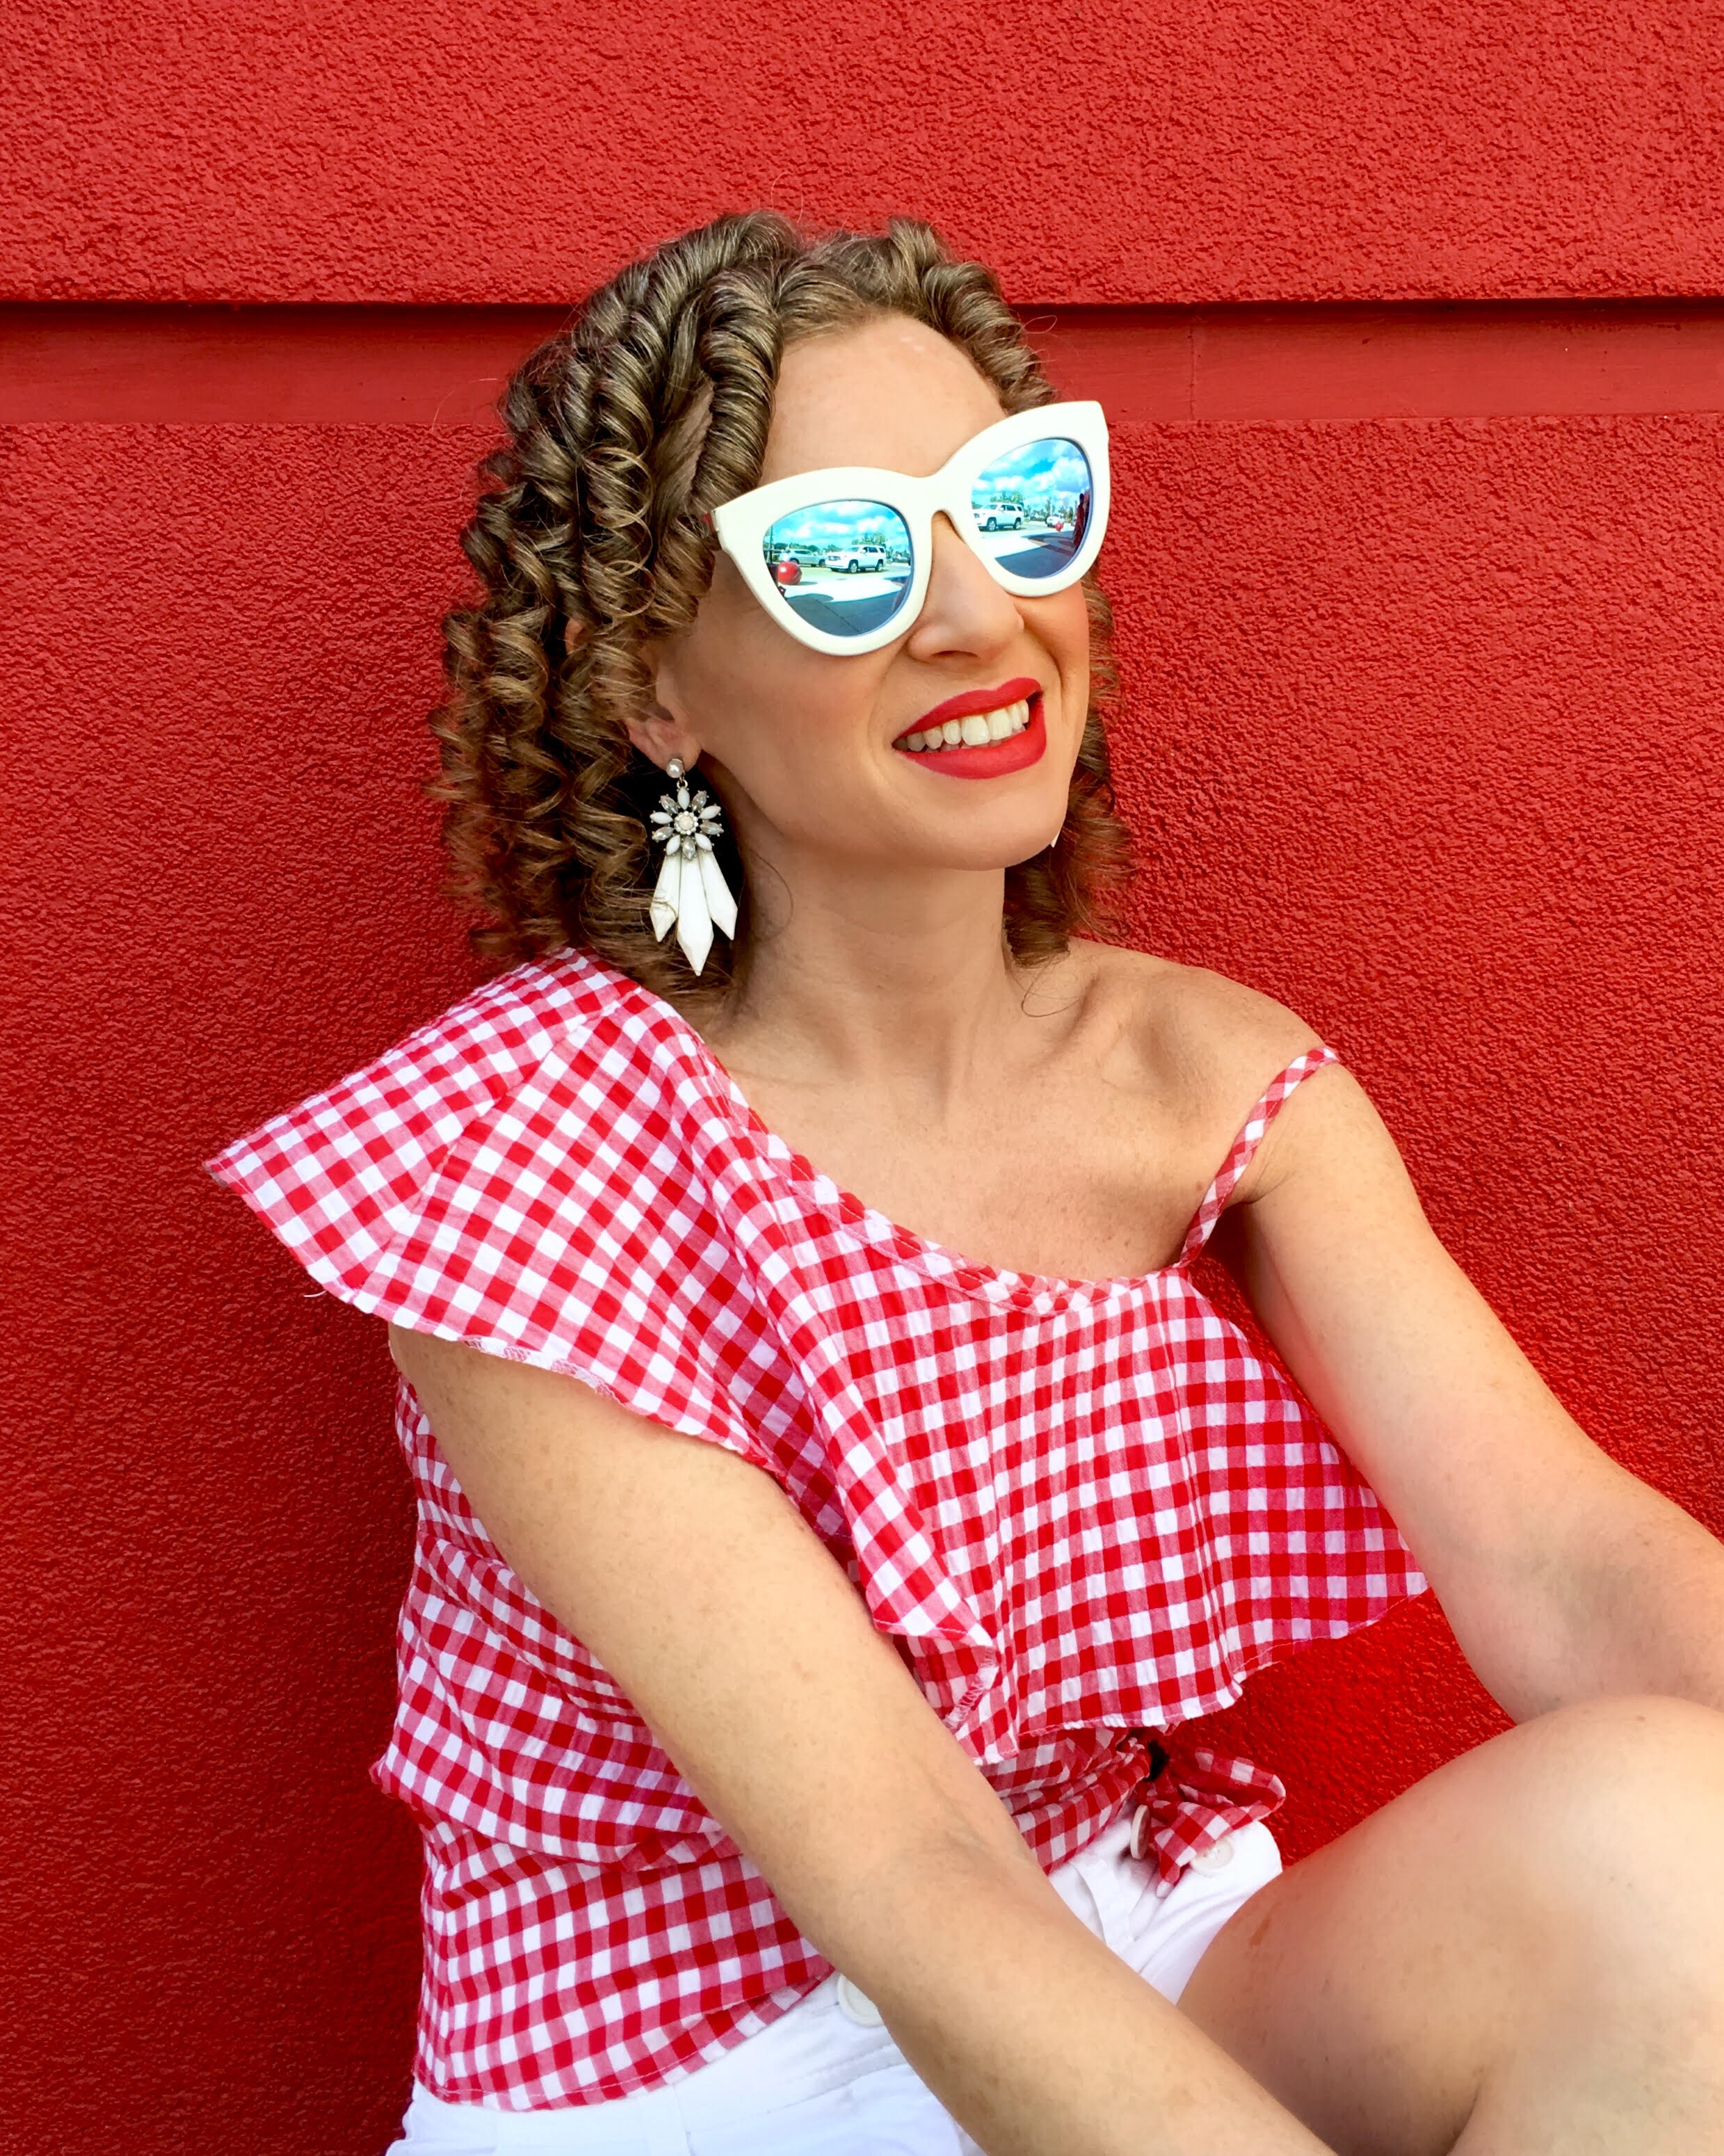 Gingham top by New Look with H&M earrings and shorts and Quay Australia eyewear, shopping at University Town Centre